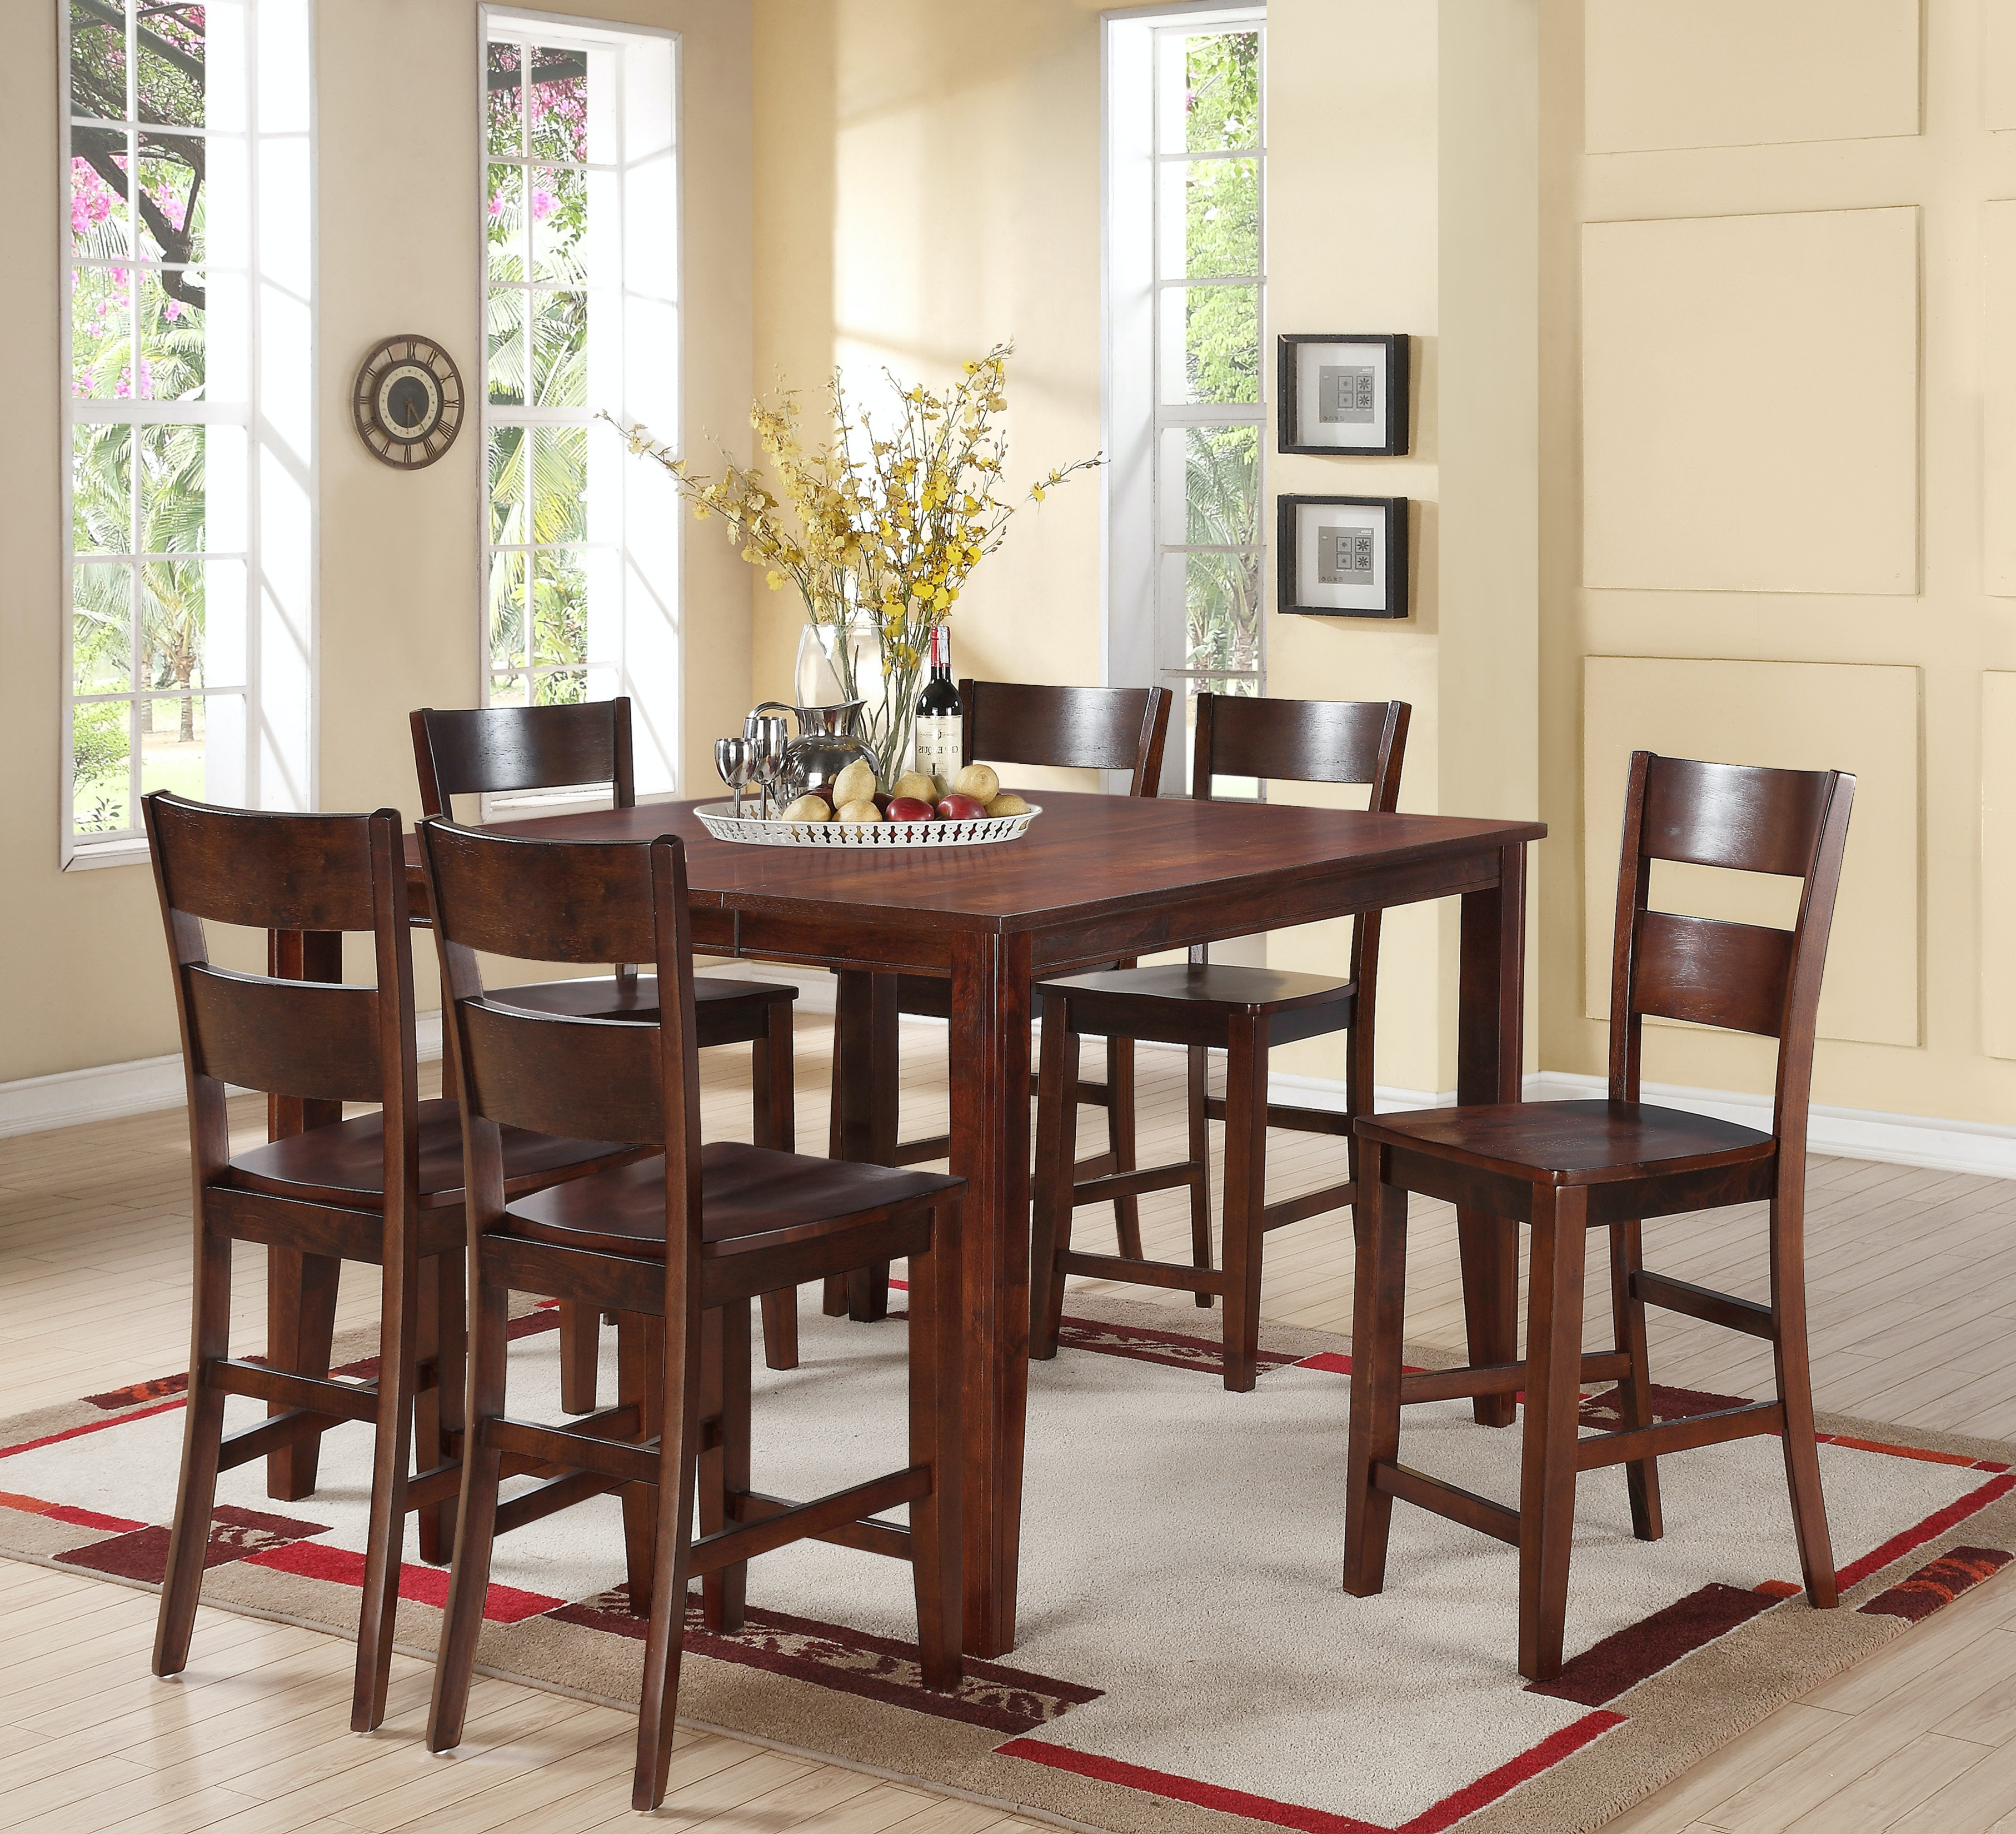 Madera 5 Piece Dining: Includes Counter Height Table U0026 4 Counter Height  Side Chairs Part 78